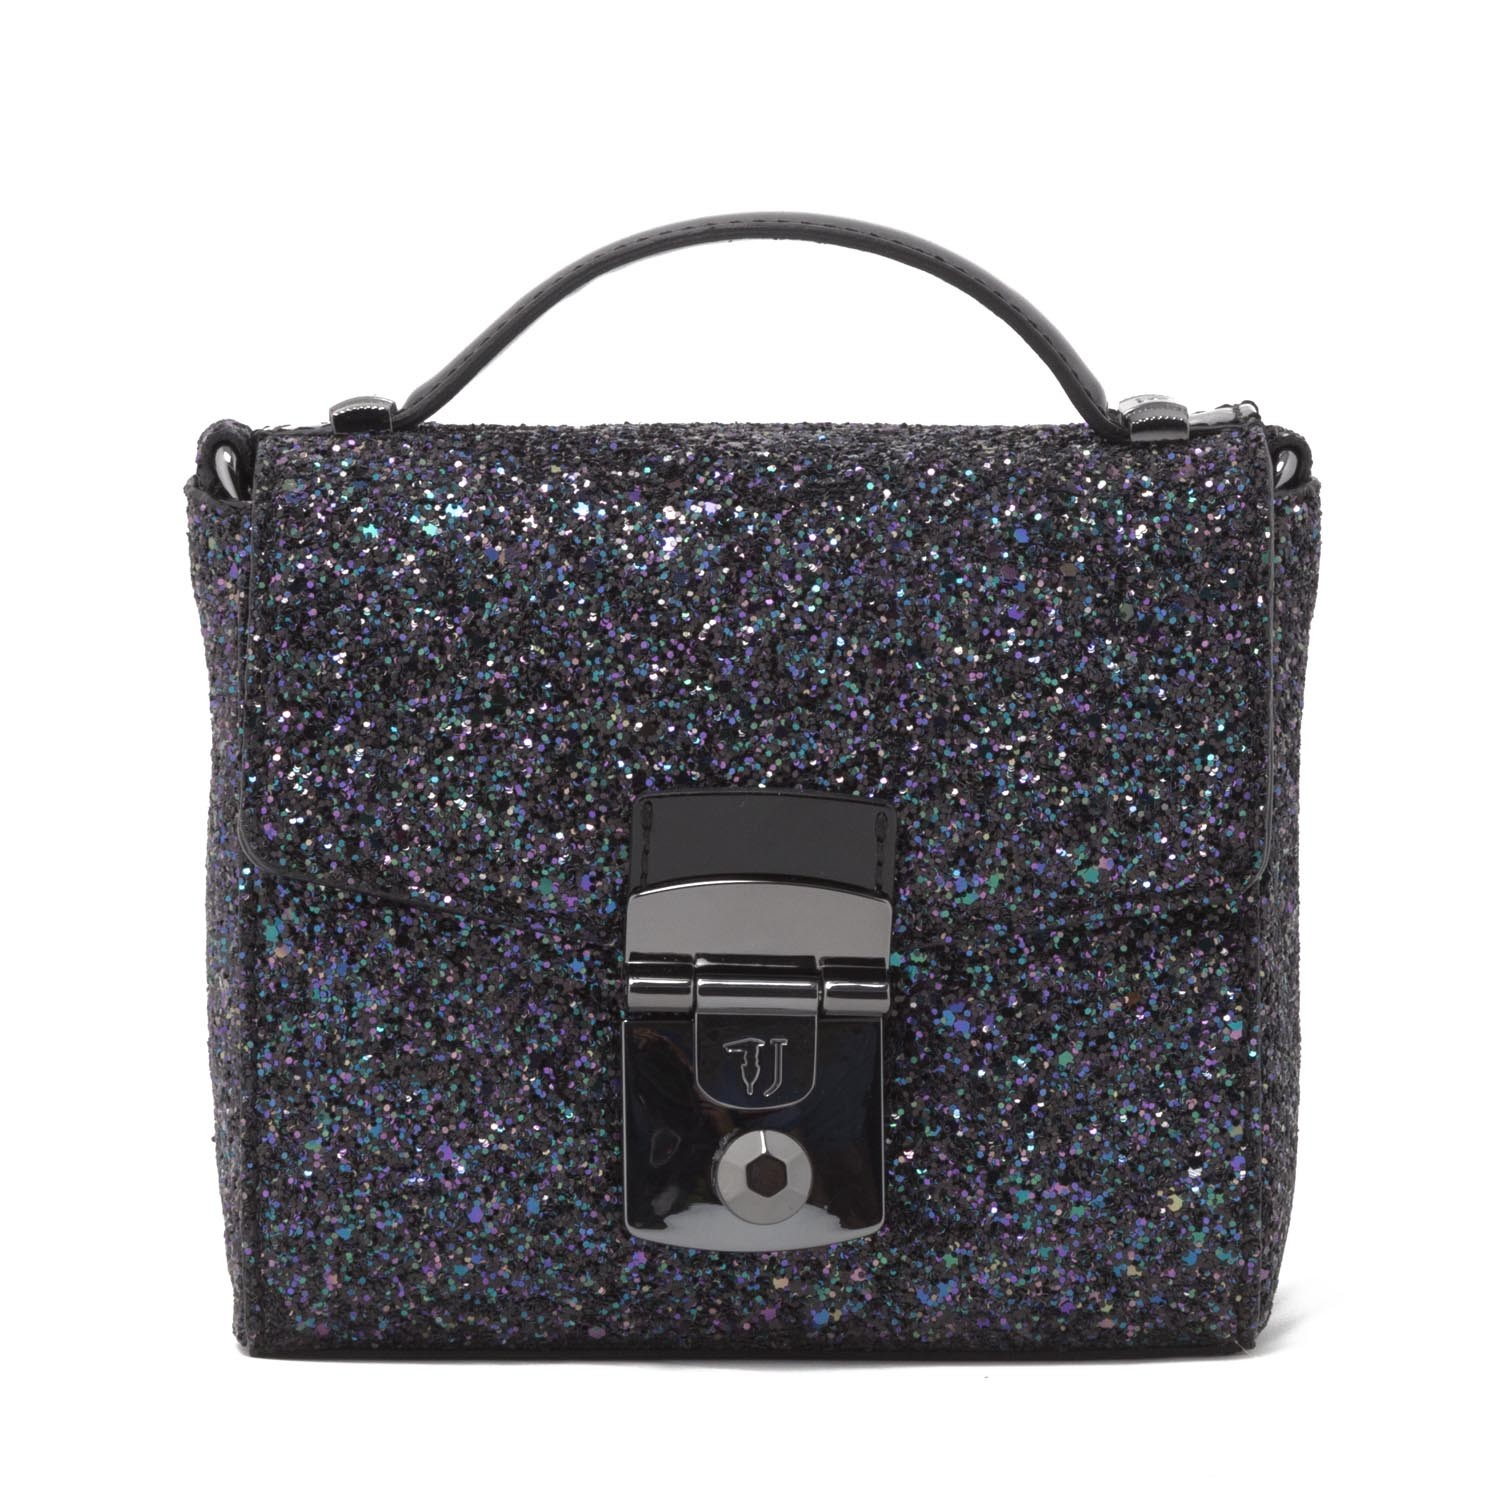 glitter-woman-bag-trussardi-jeans-available-in-black-and-gold (1)